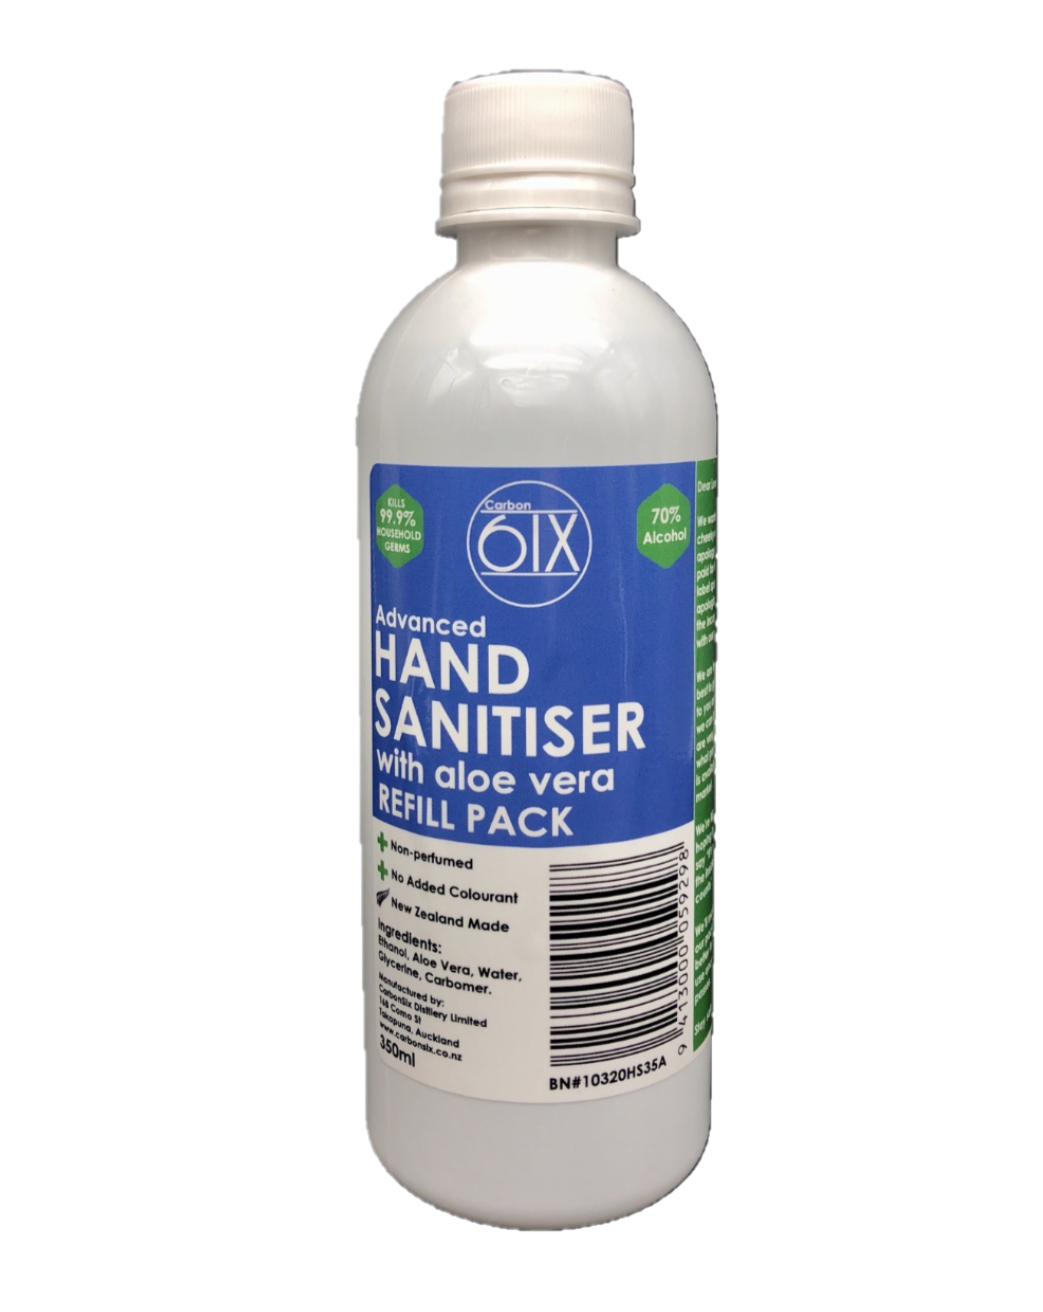 Advanced Hand Sanitiser 350ml | 70% Alcohol | NZ Made Refill Pack